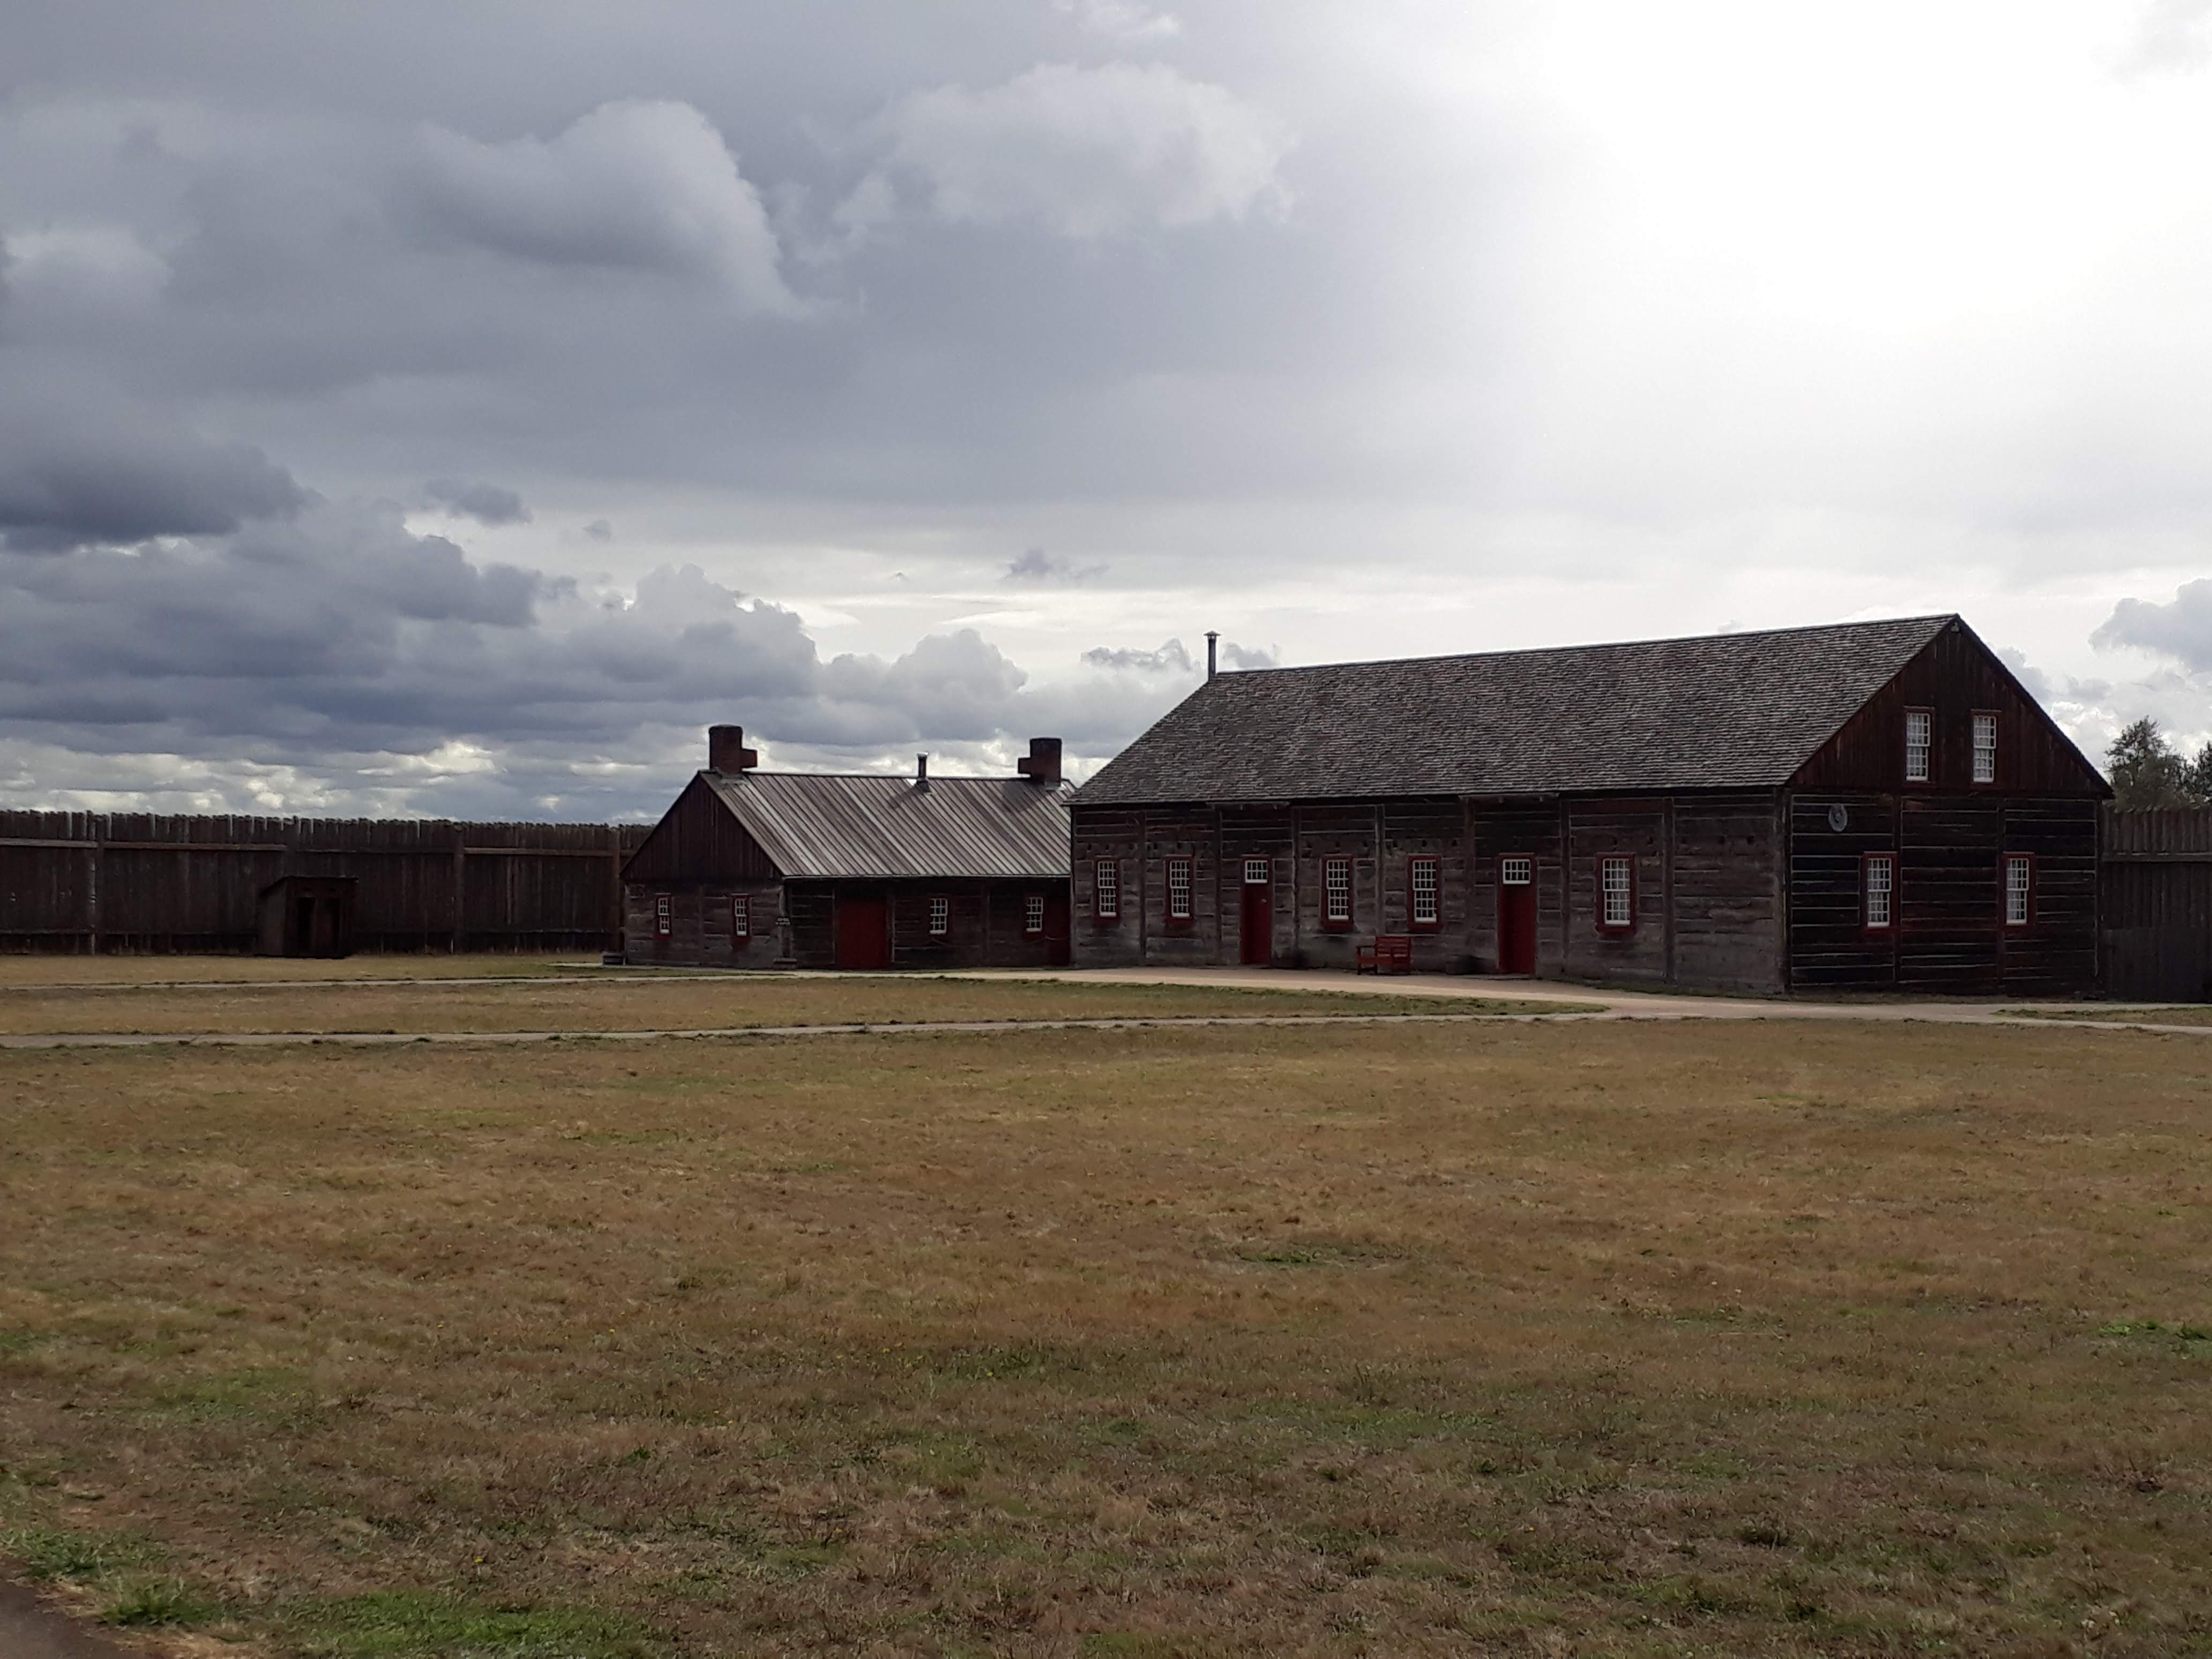 visiting Fort Vancouver